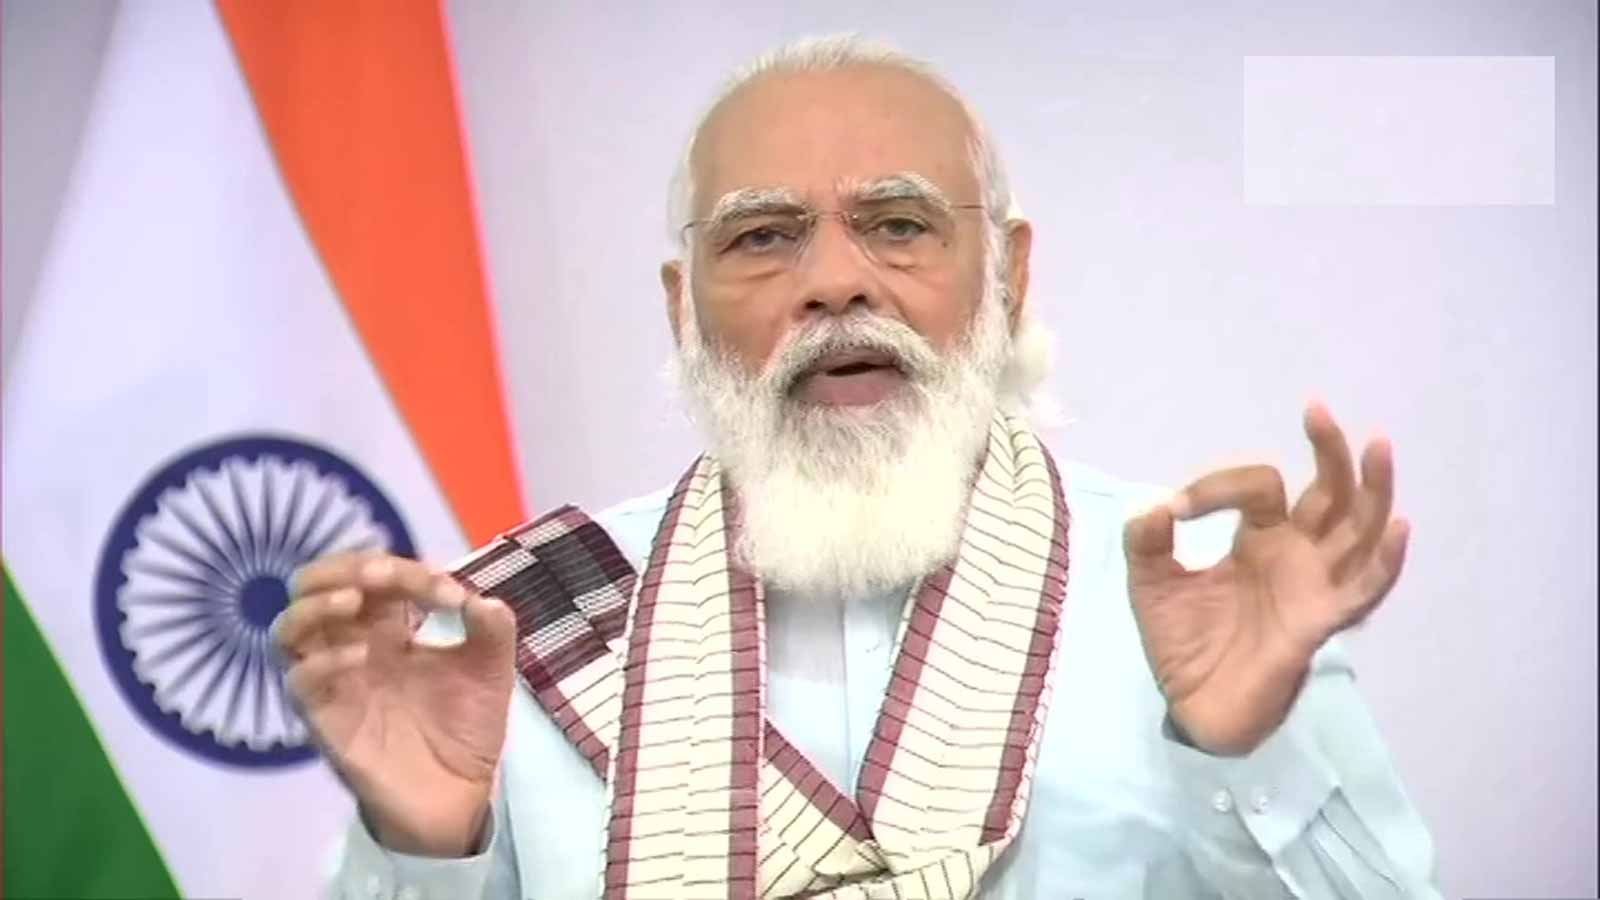 lockdown-may-have-ended-but-coronavirus-is-still-there-says-pm-narendra-modi